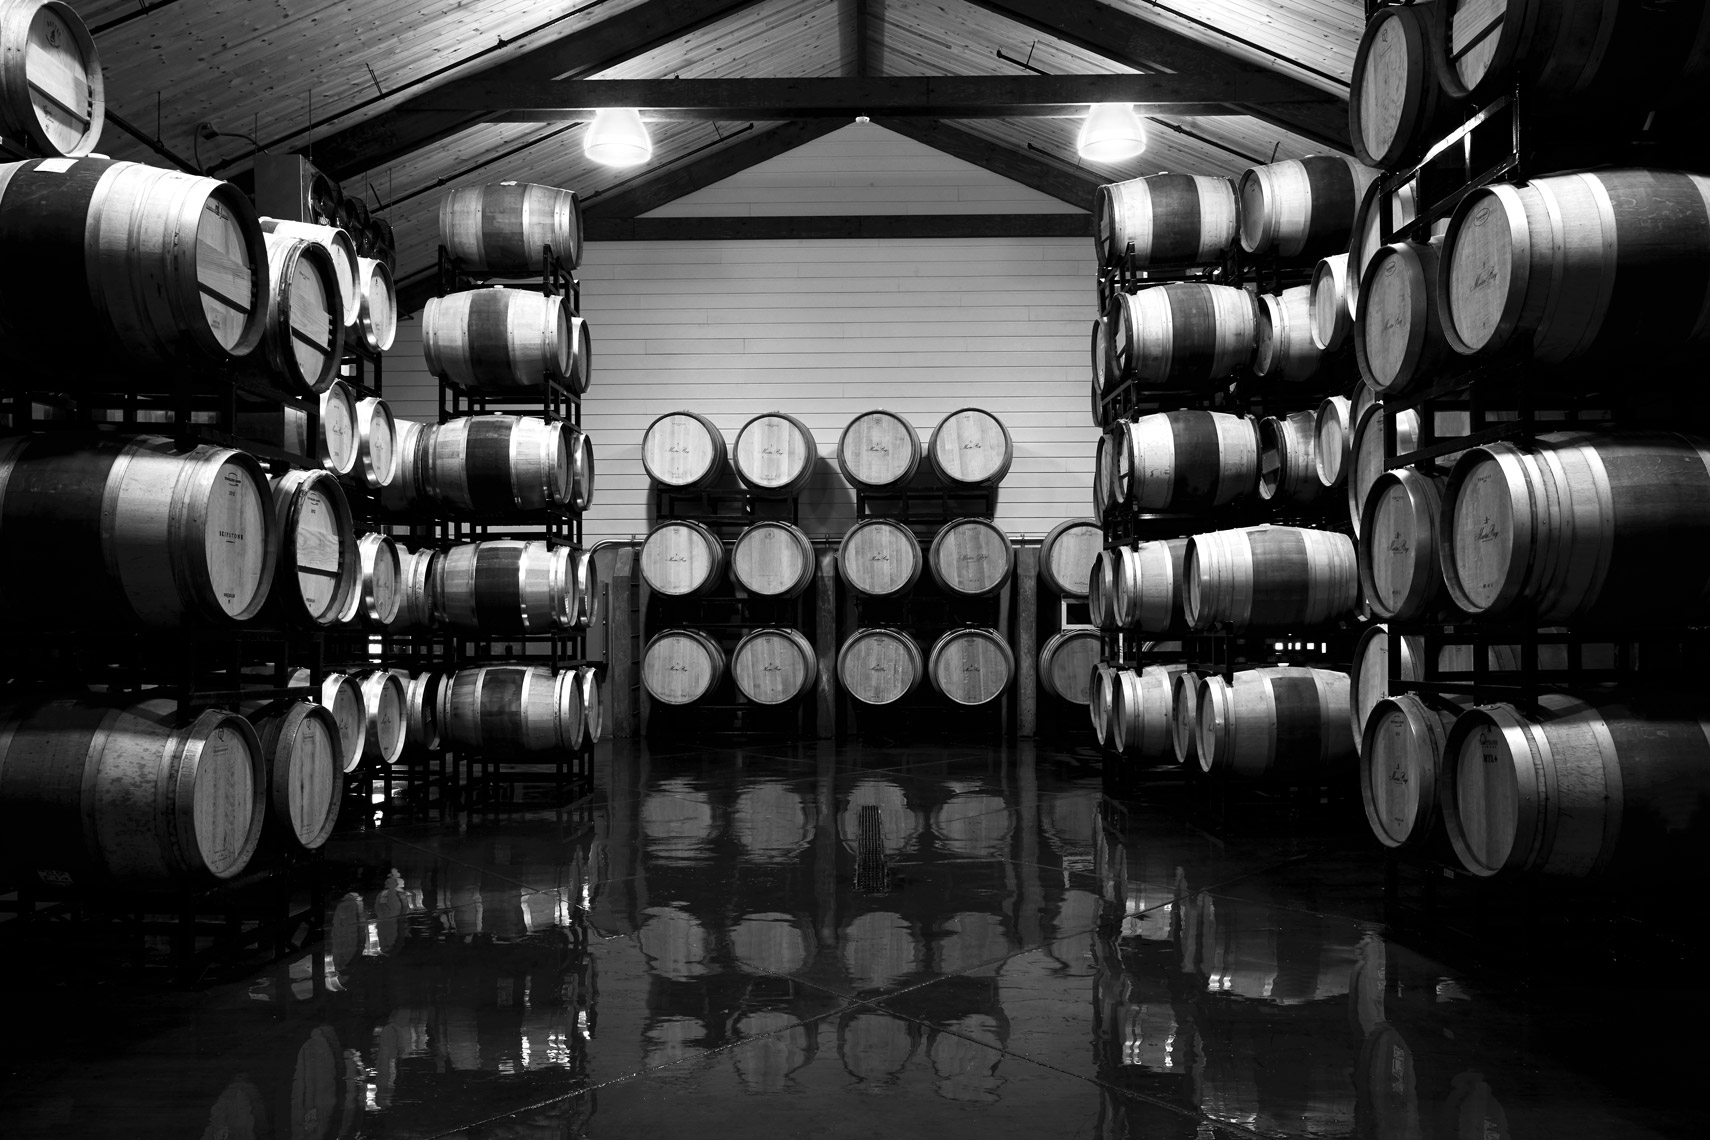 AlanCampbellPhotography, barrel room in Black and White